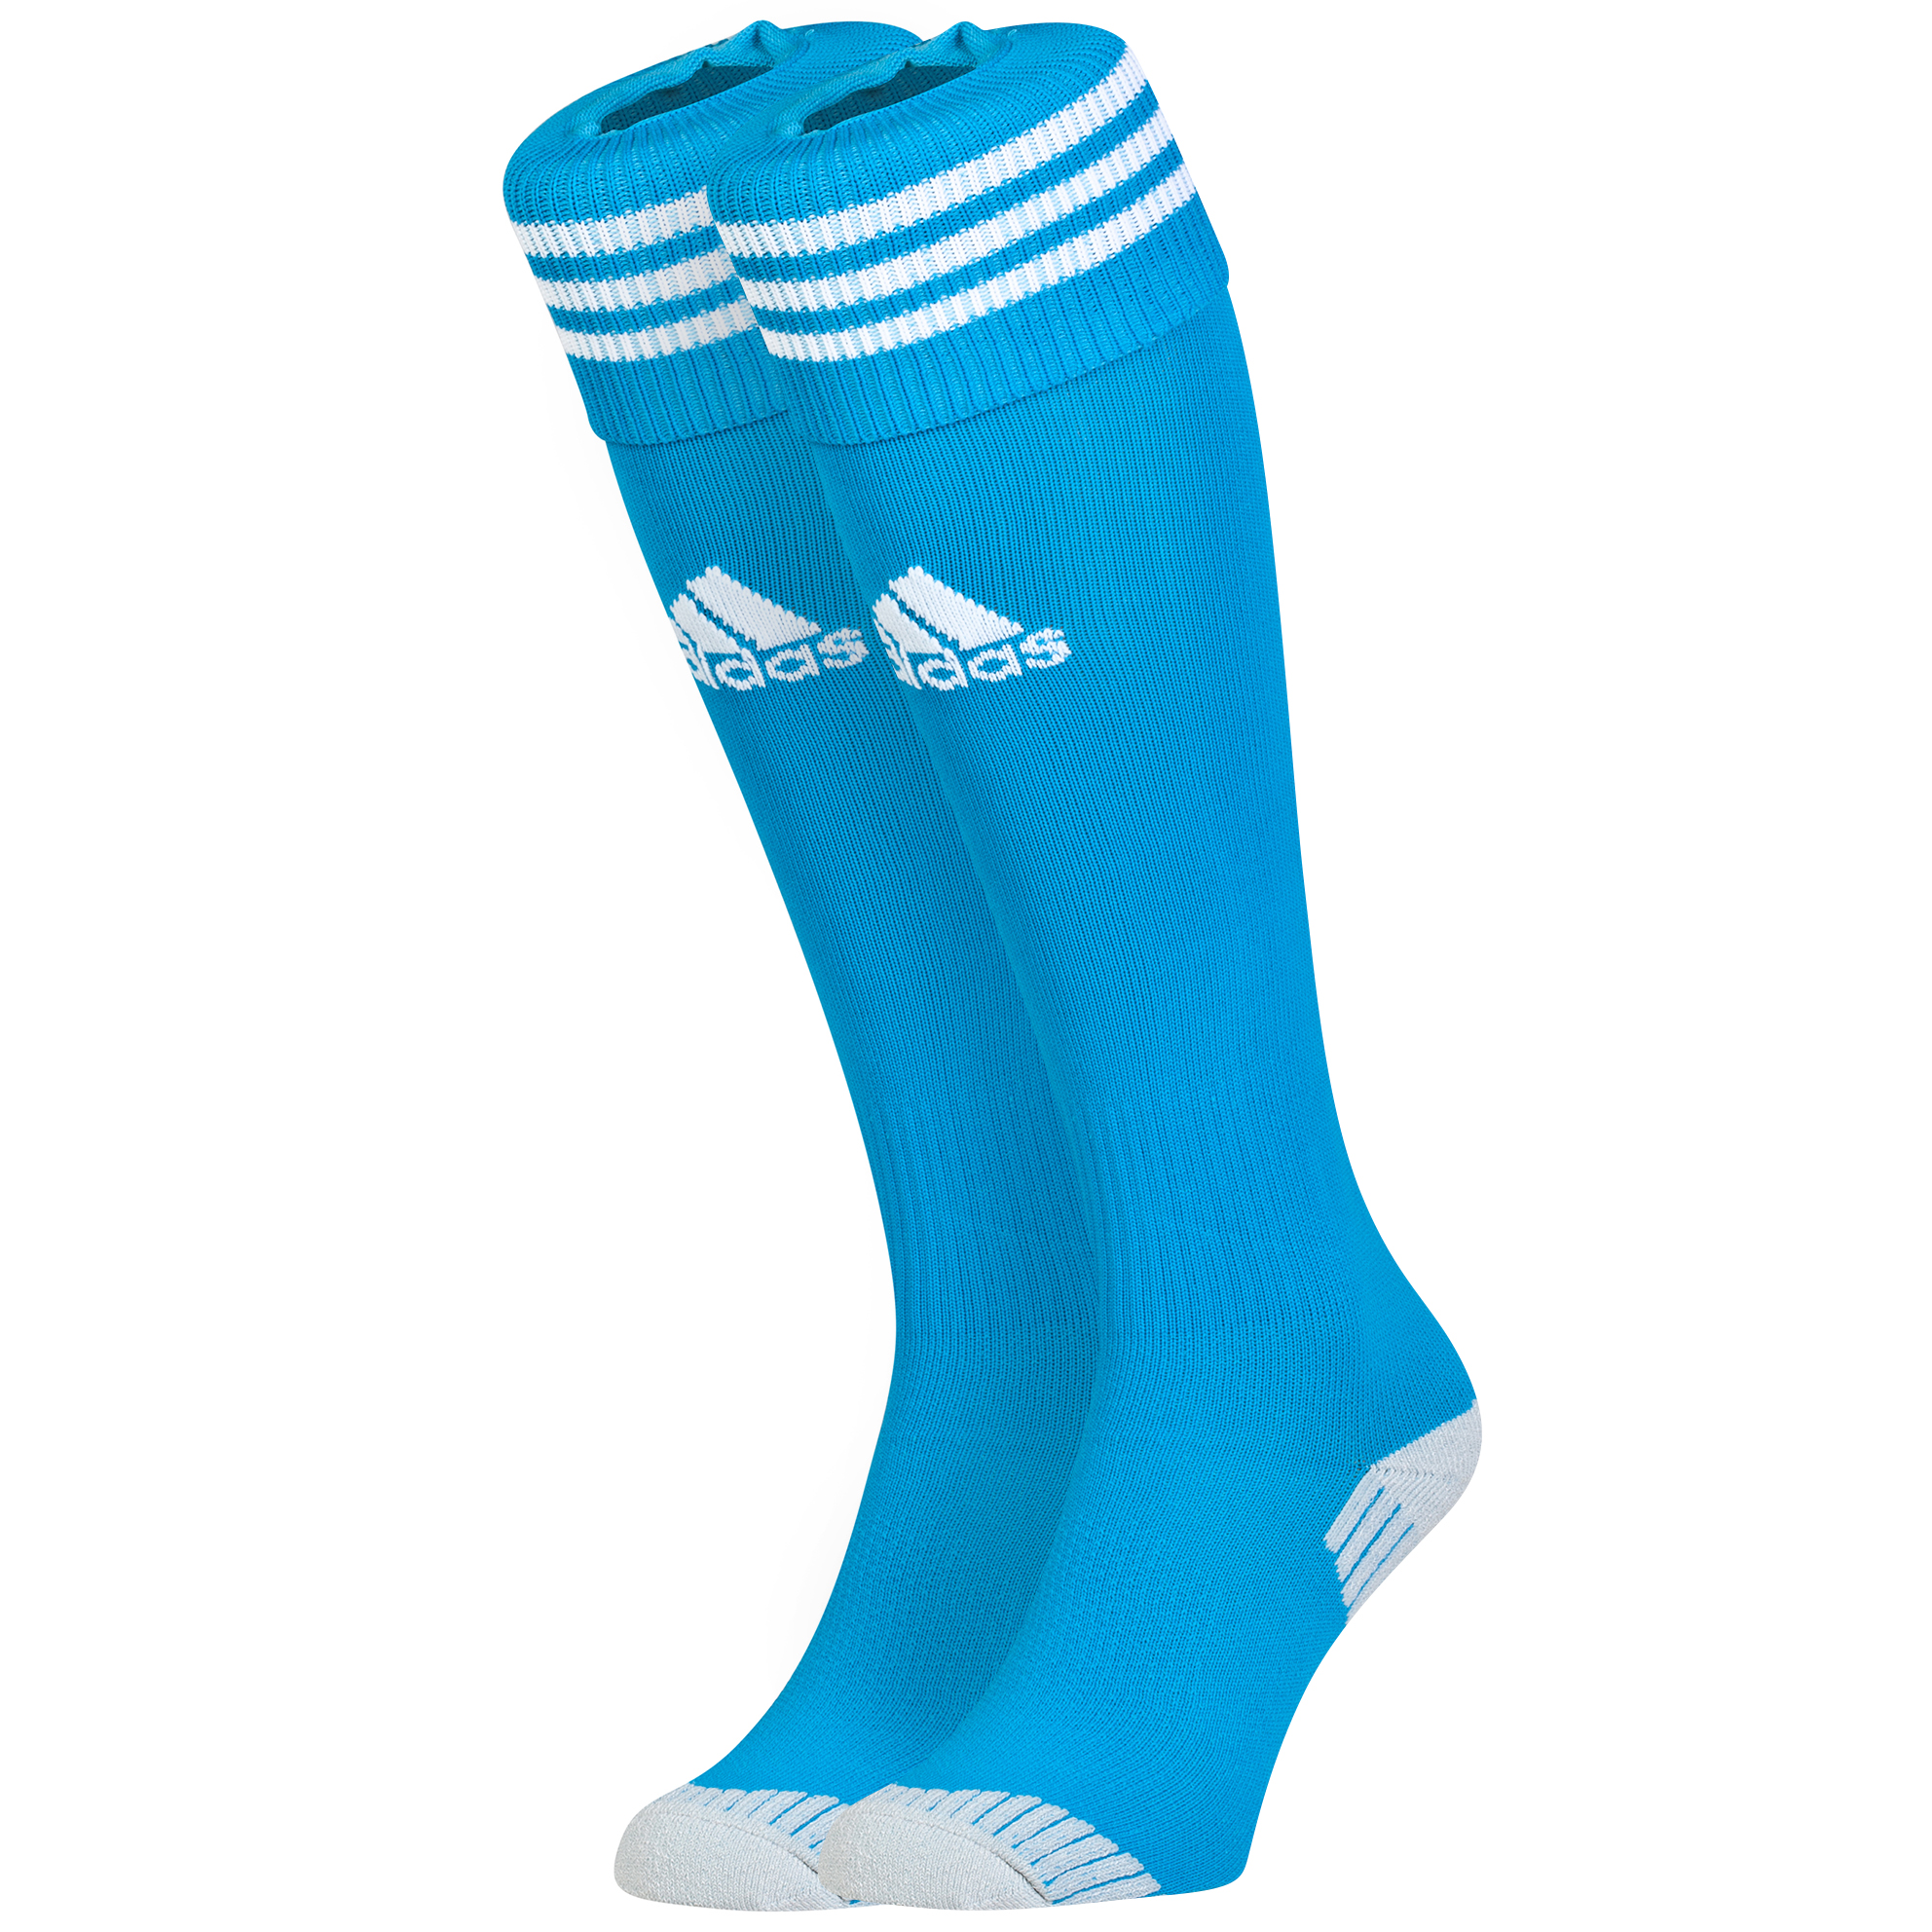 Sunderland Away Sock 2014/15 - Lt Blue